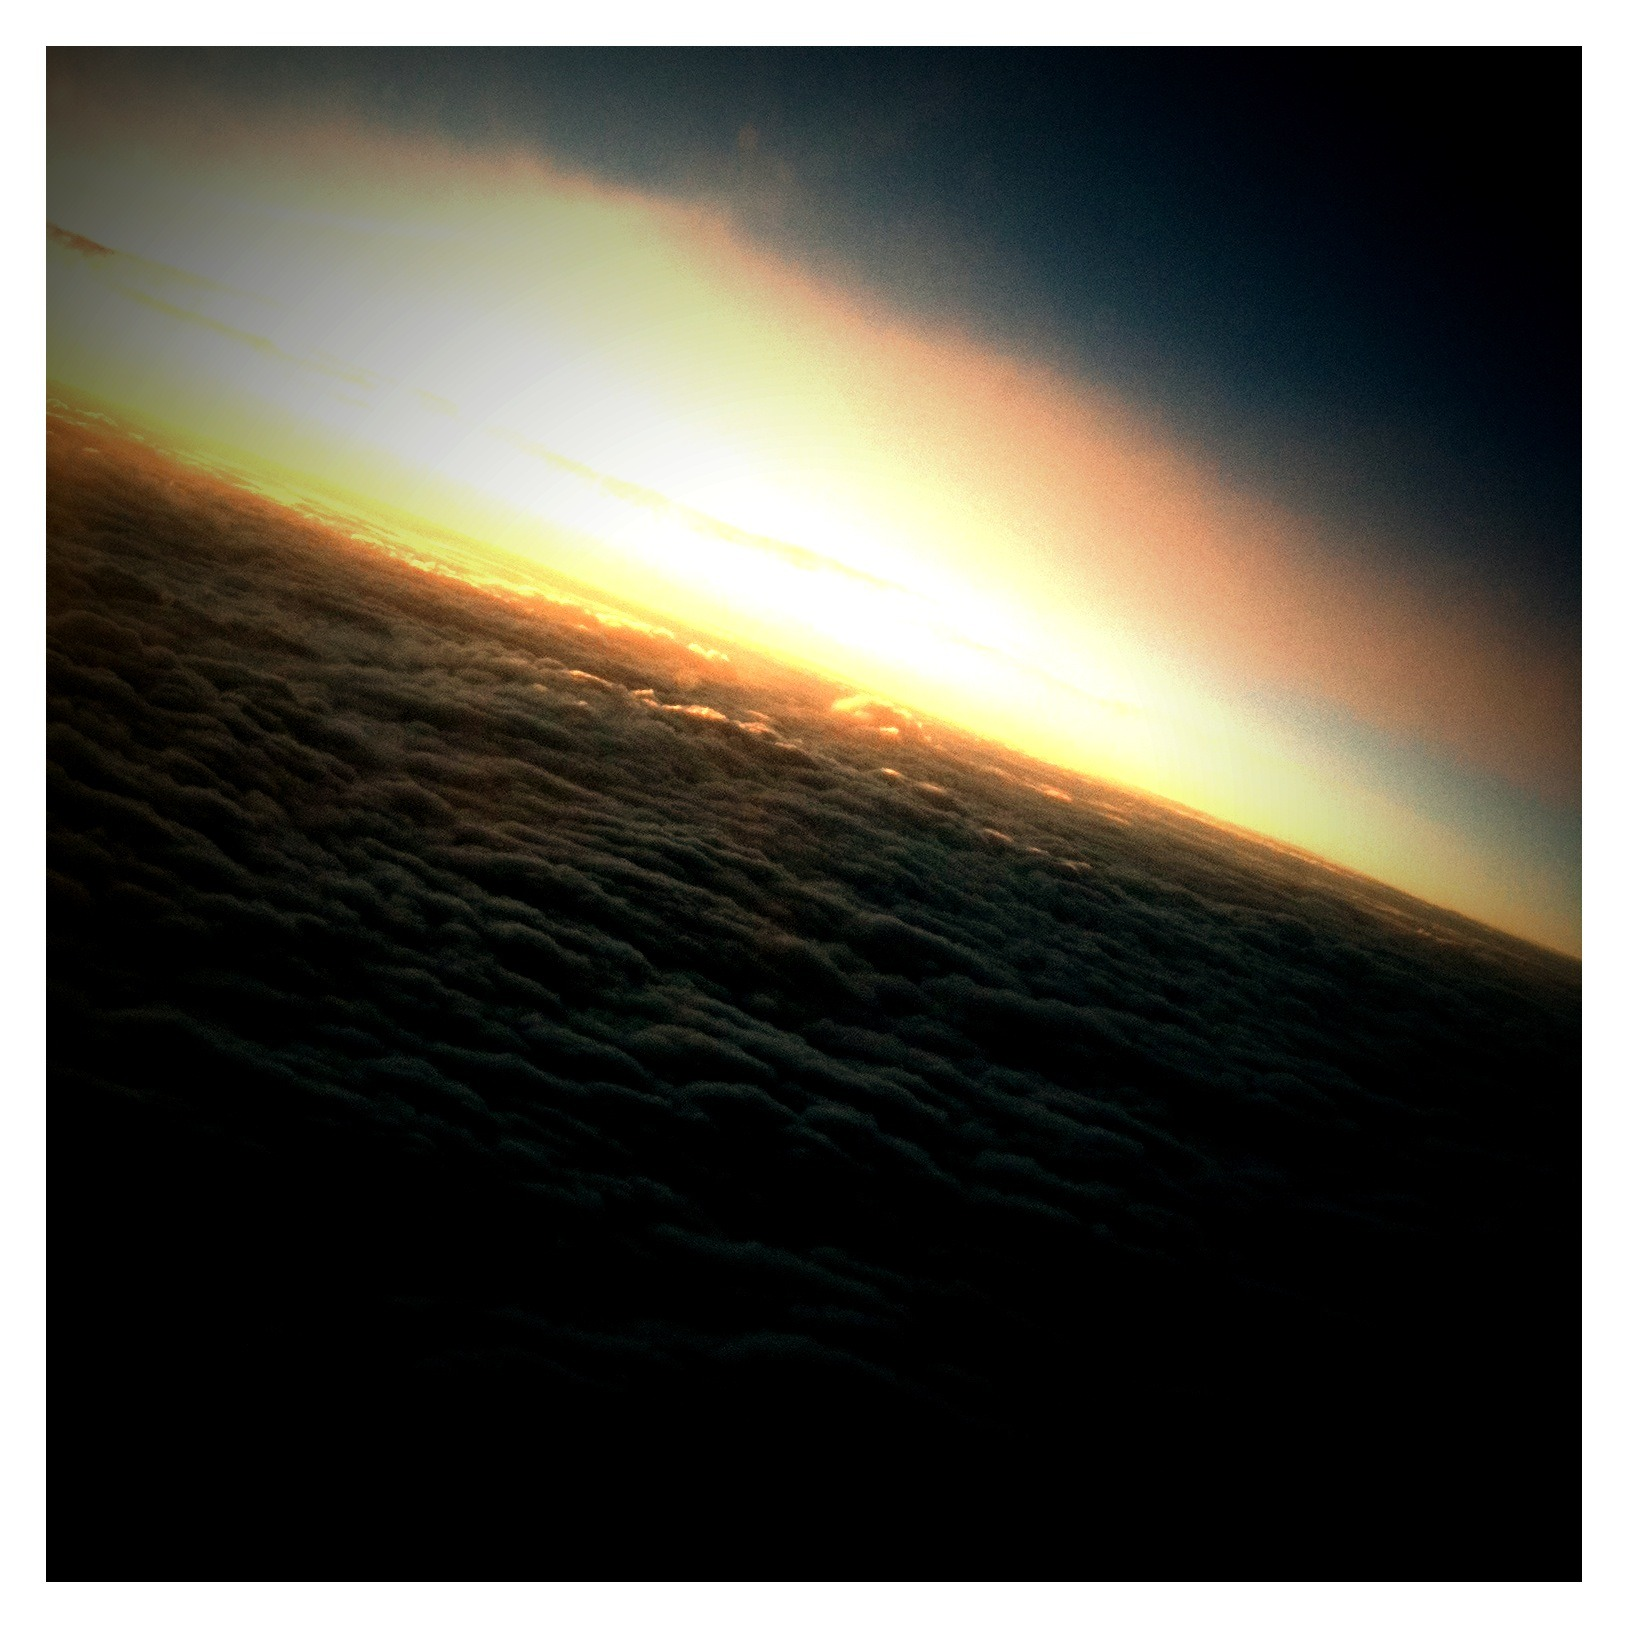 A few shots of clouds/sunset from the plane.